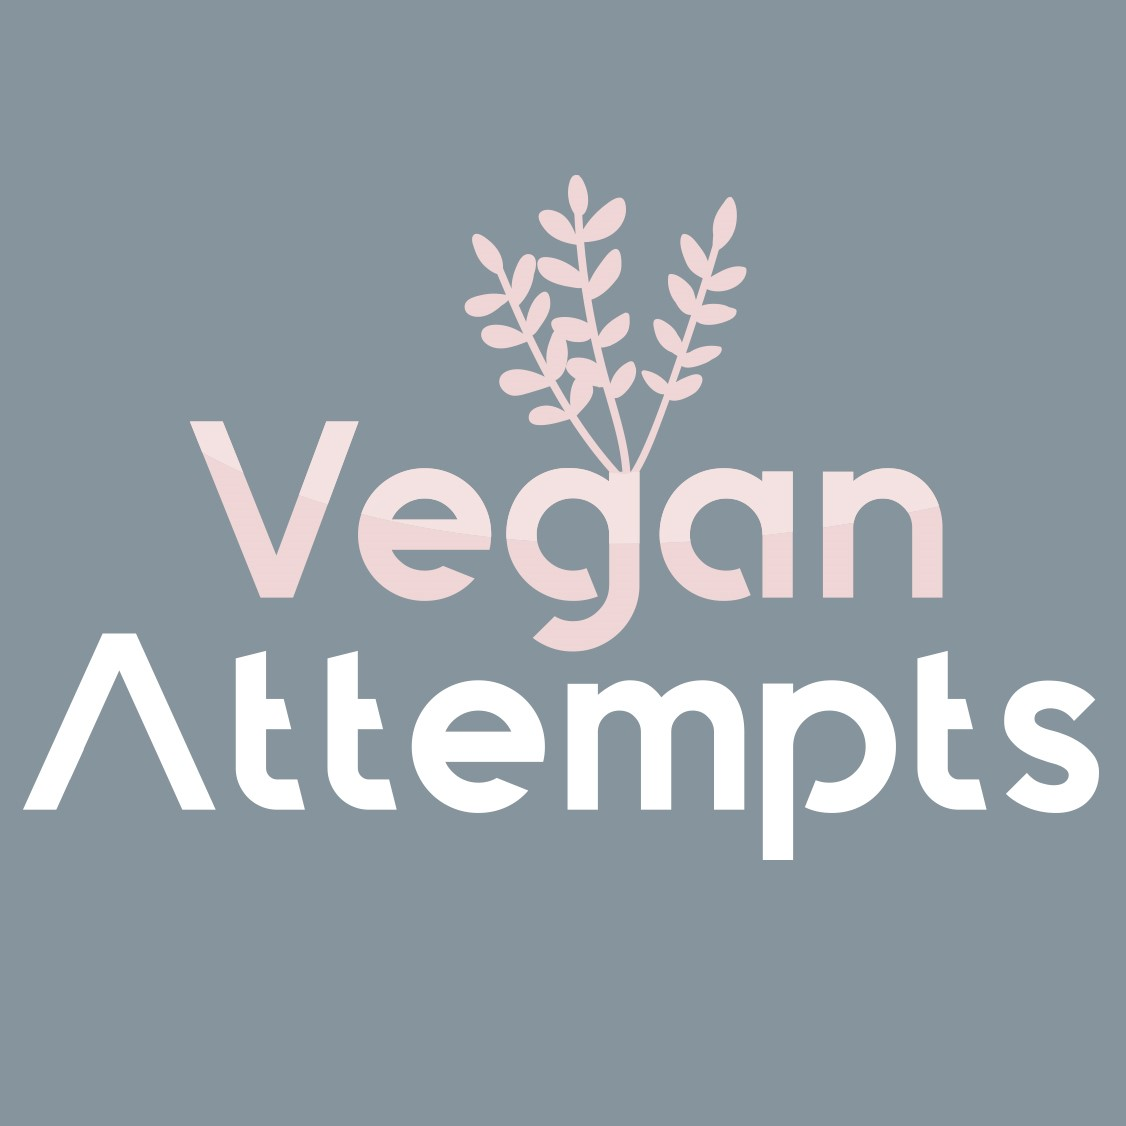 Vegan Attempts